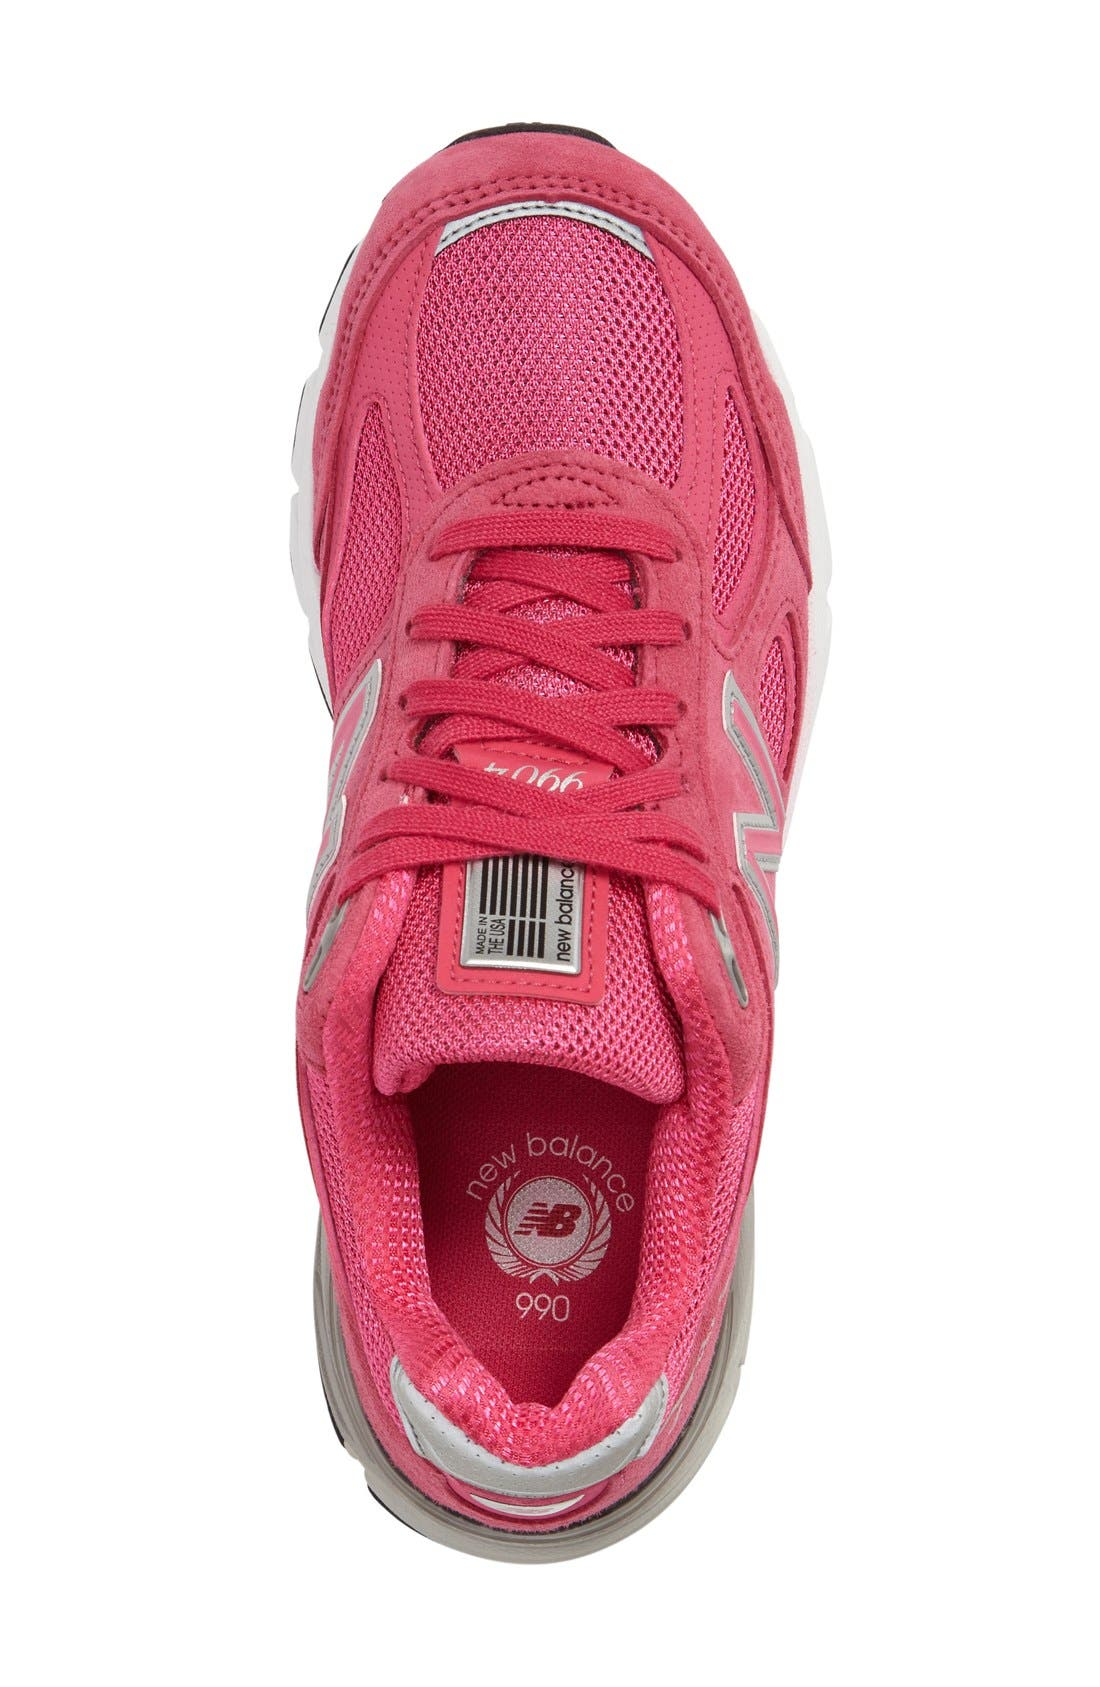 Alternate Image 3  - New Balance '990 Premium' Running Shoe (Women)